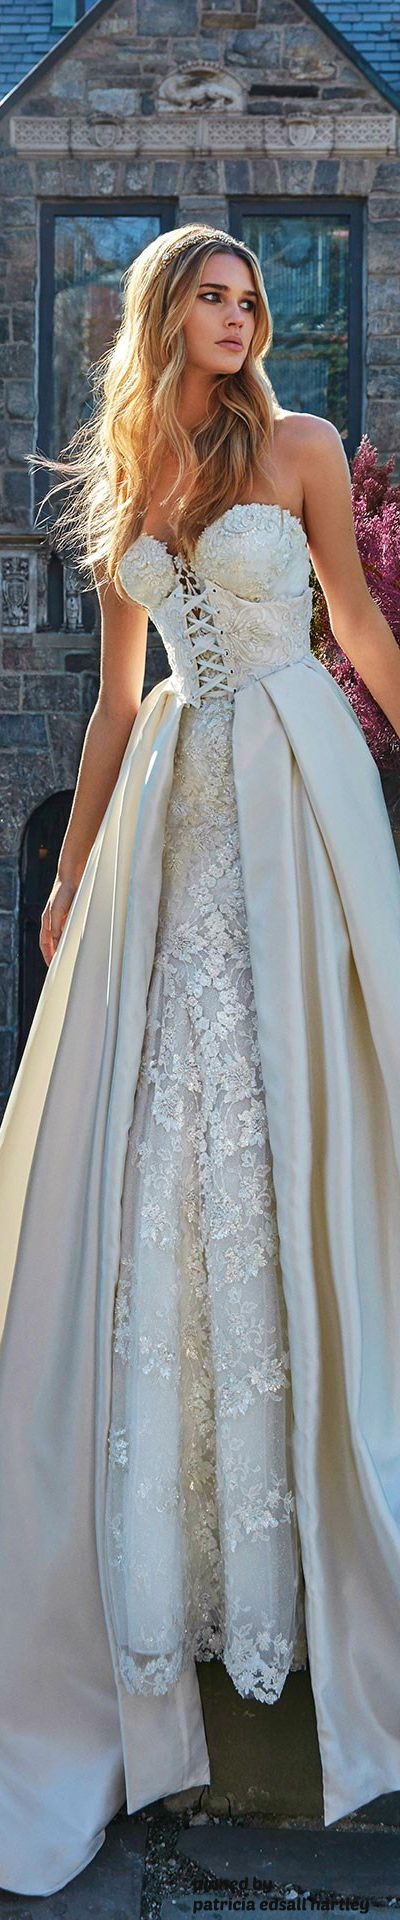 1789 best sposa images on Pinterest | Party fashion, Classy dress ...